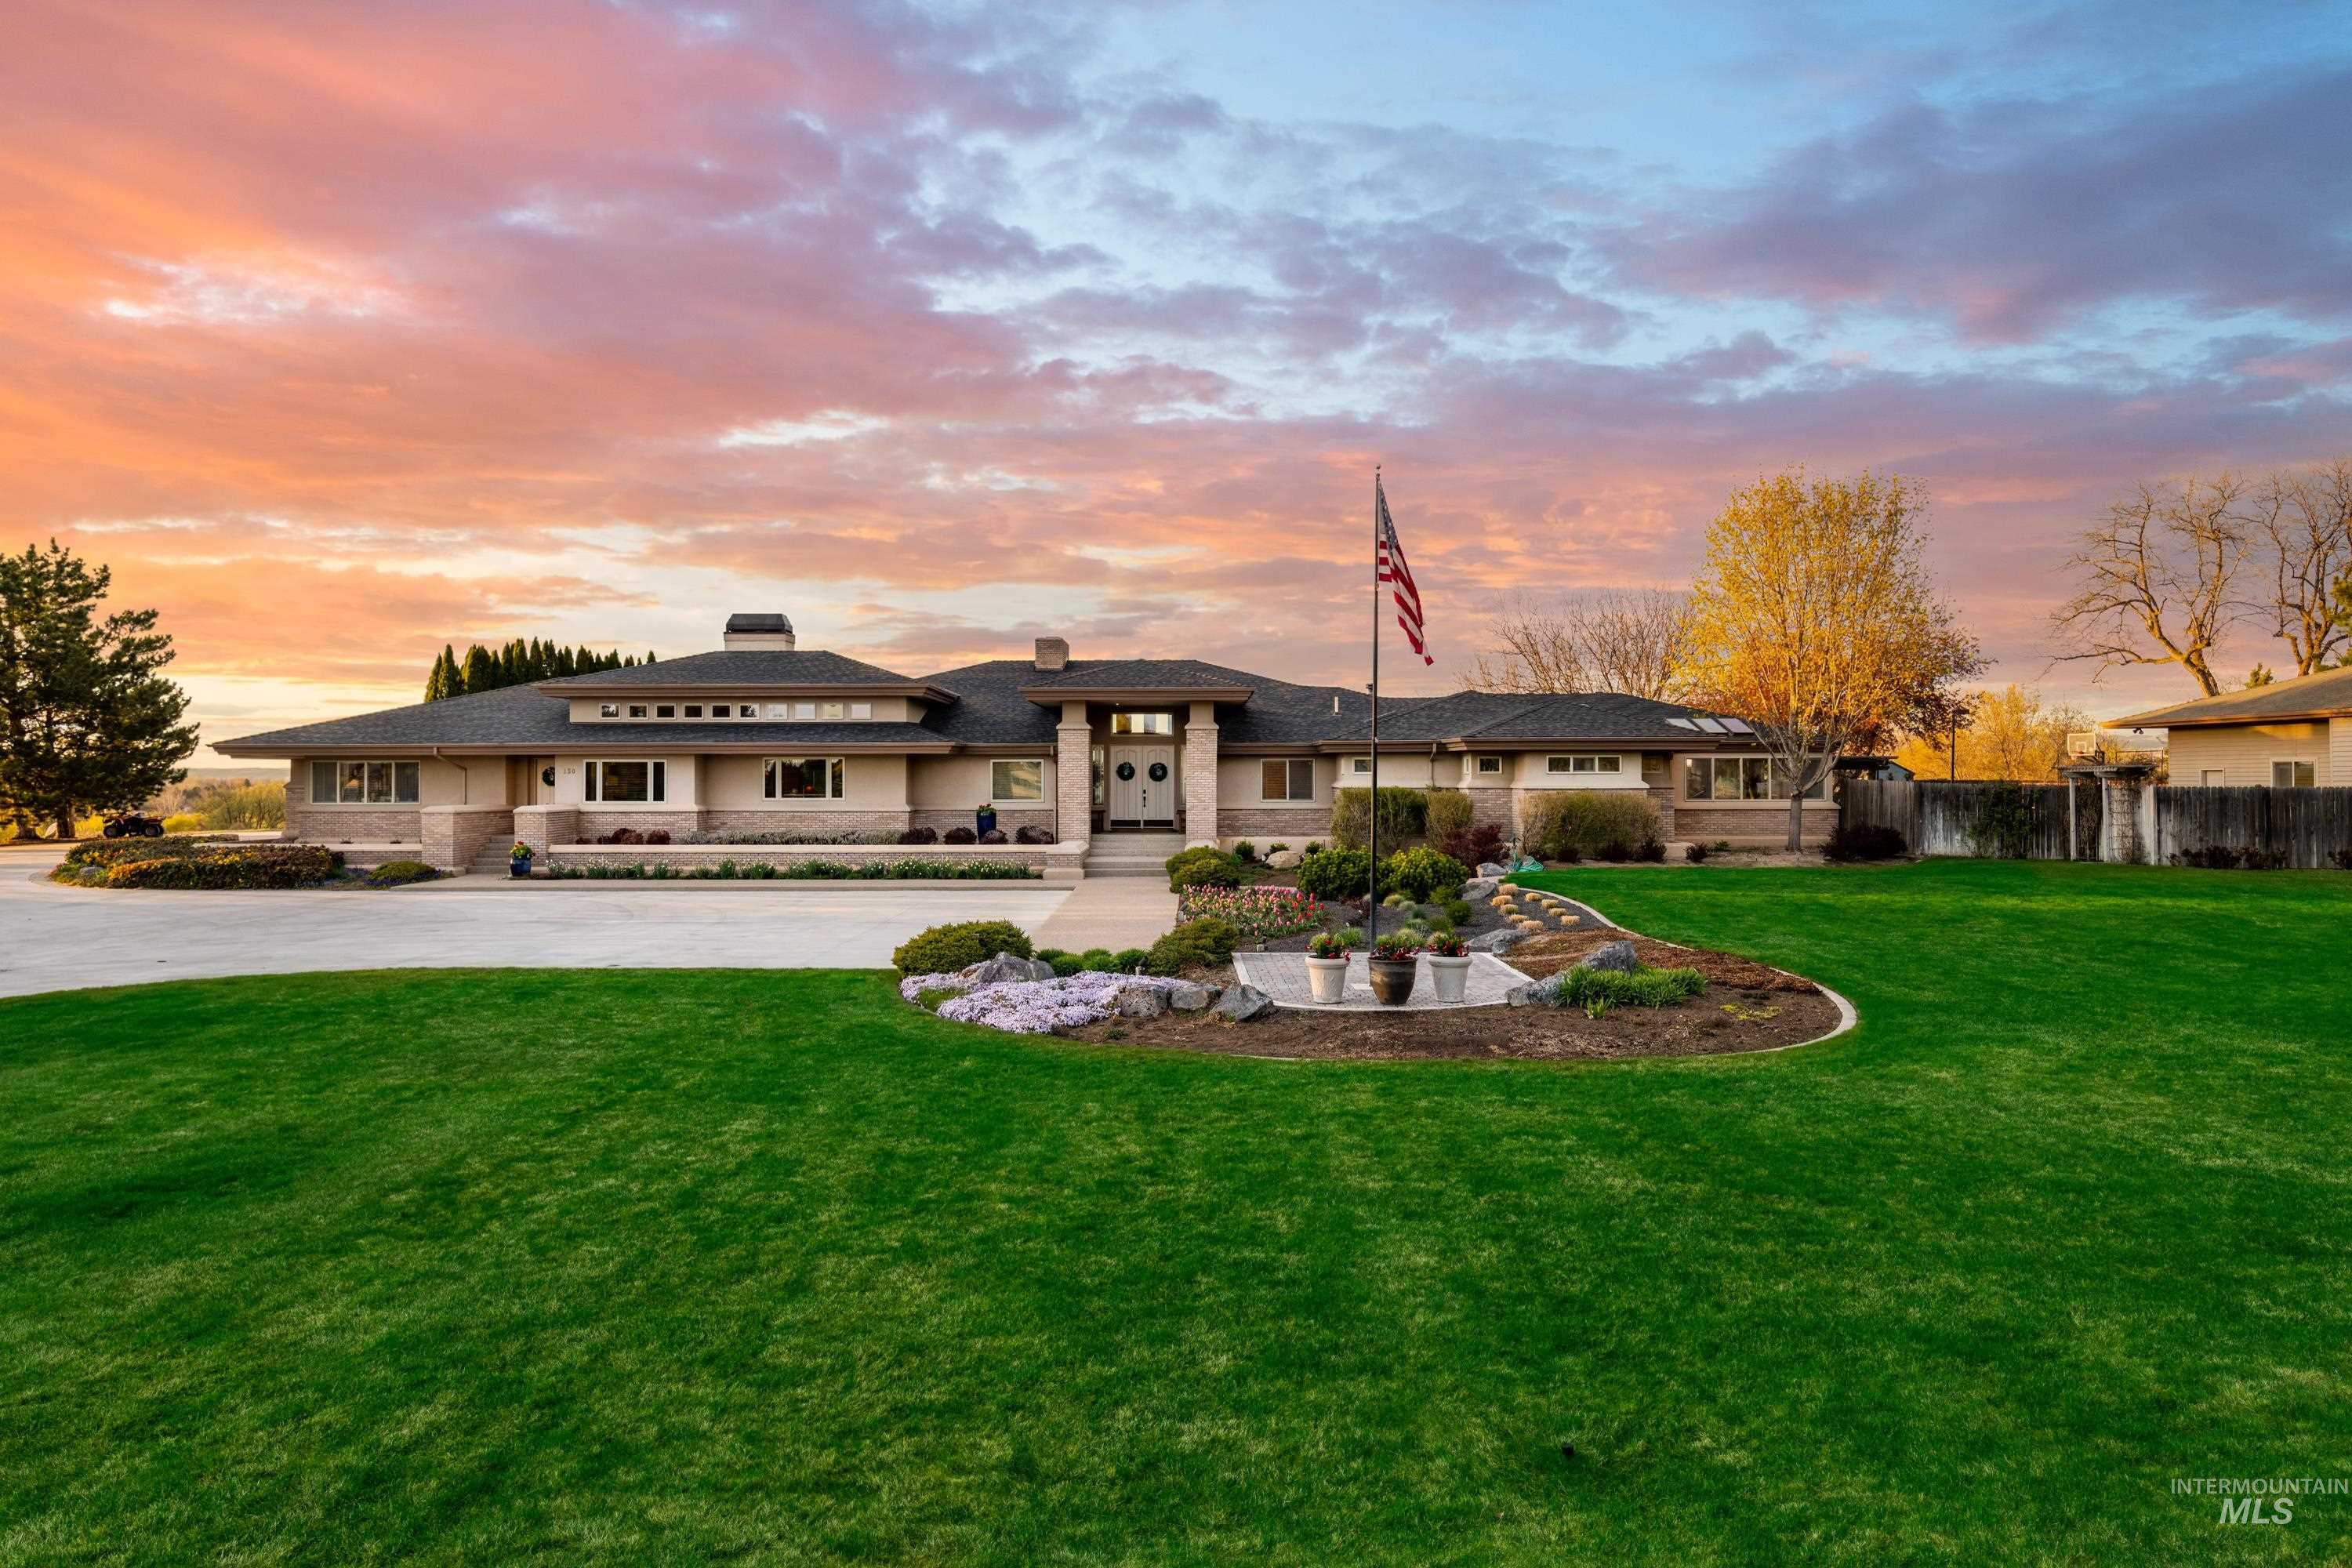 Set on a prime rim lot overlooking the Boise River with views of Squaw Butte, this Trey Hoff designed masterpiece offers nearly 5 acres of space including a detached shop, & a horse barn with riding arena. Wake up to stunning views in the master retreat that features its own sunroom and indoor hot tub. The kitchen features state of the art amenities including Wolf & Thermador appliances, and beautiful granite finishes. The backyard oasis has multiple entertaining spaces and a large pool and sport court. - Mogie Holm, Voice: 208-841-0530, Group One Sotheby's Int'l Realty, Main: 208-287-5000, http://www.mogieholm.com